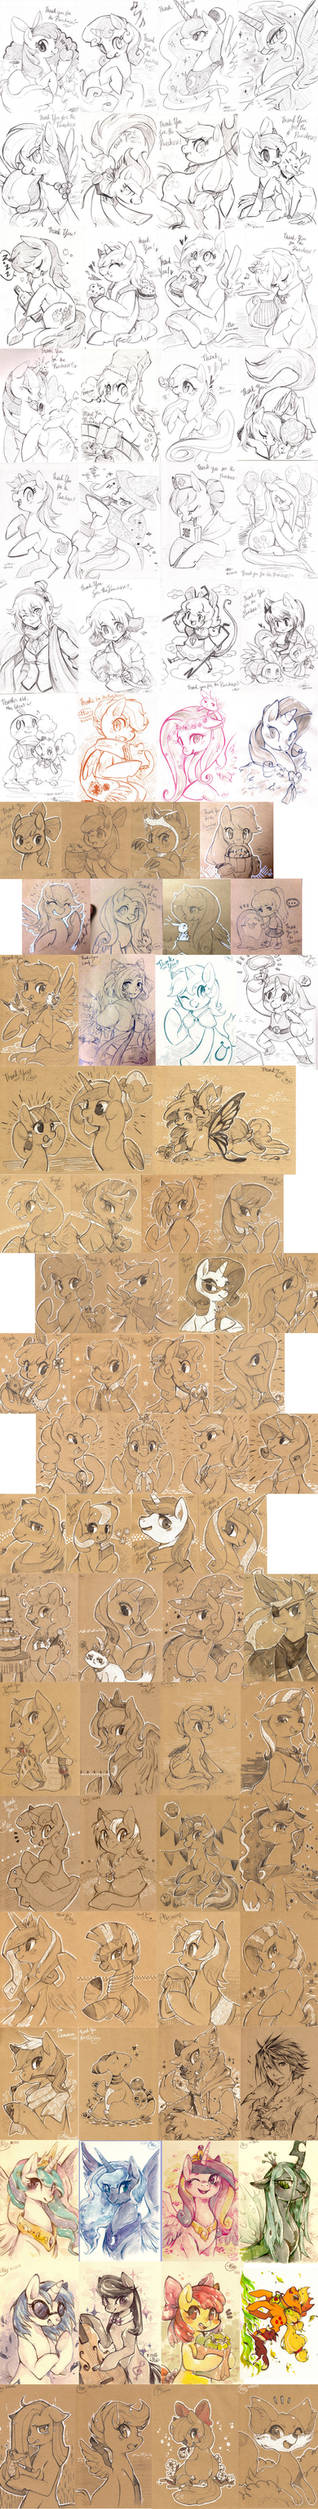 One year worth of Etsy sketches -